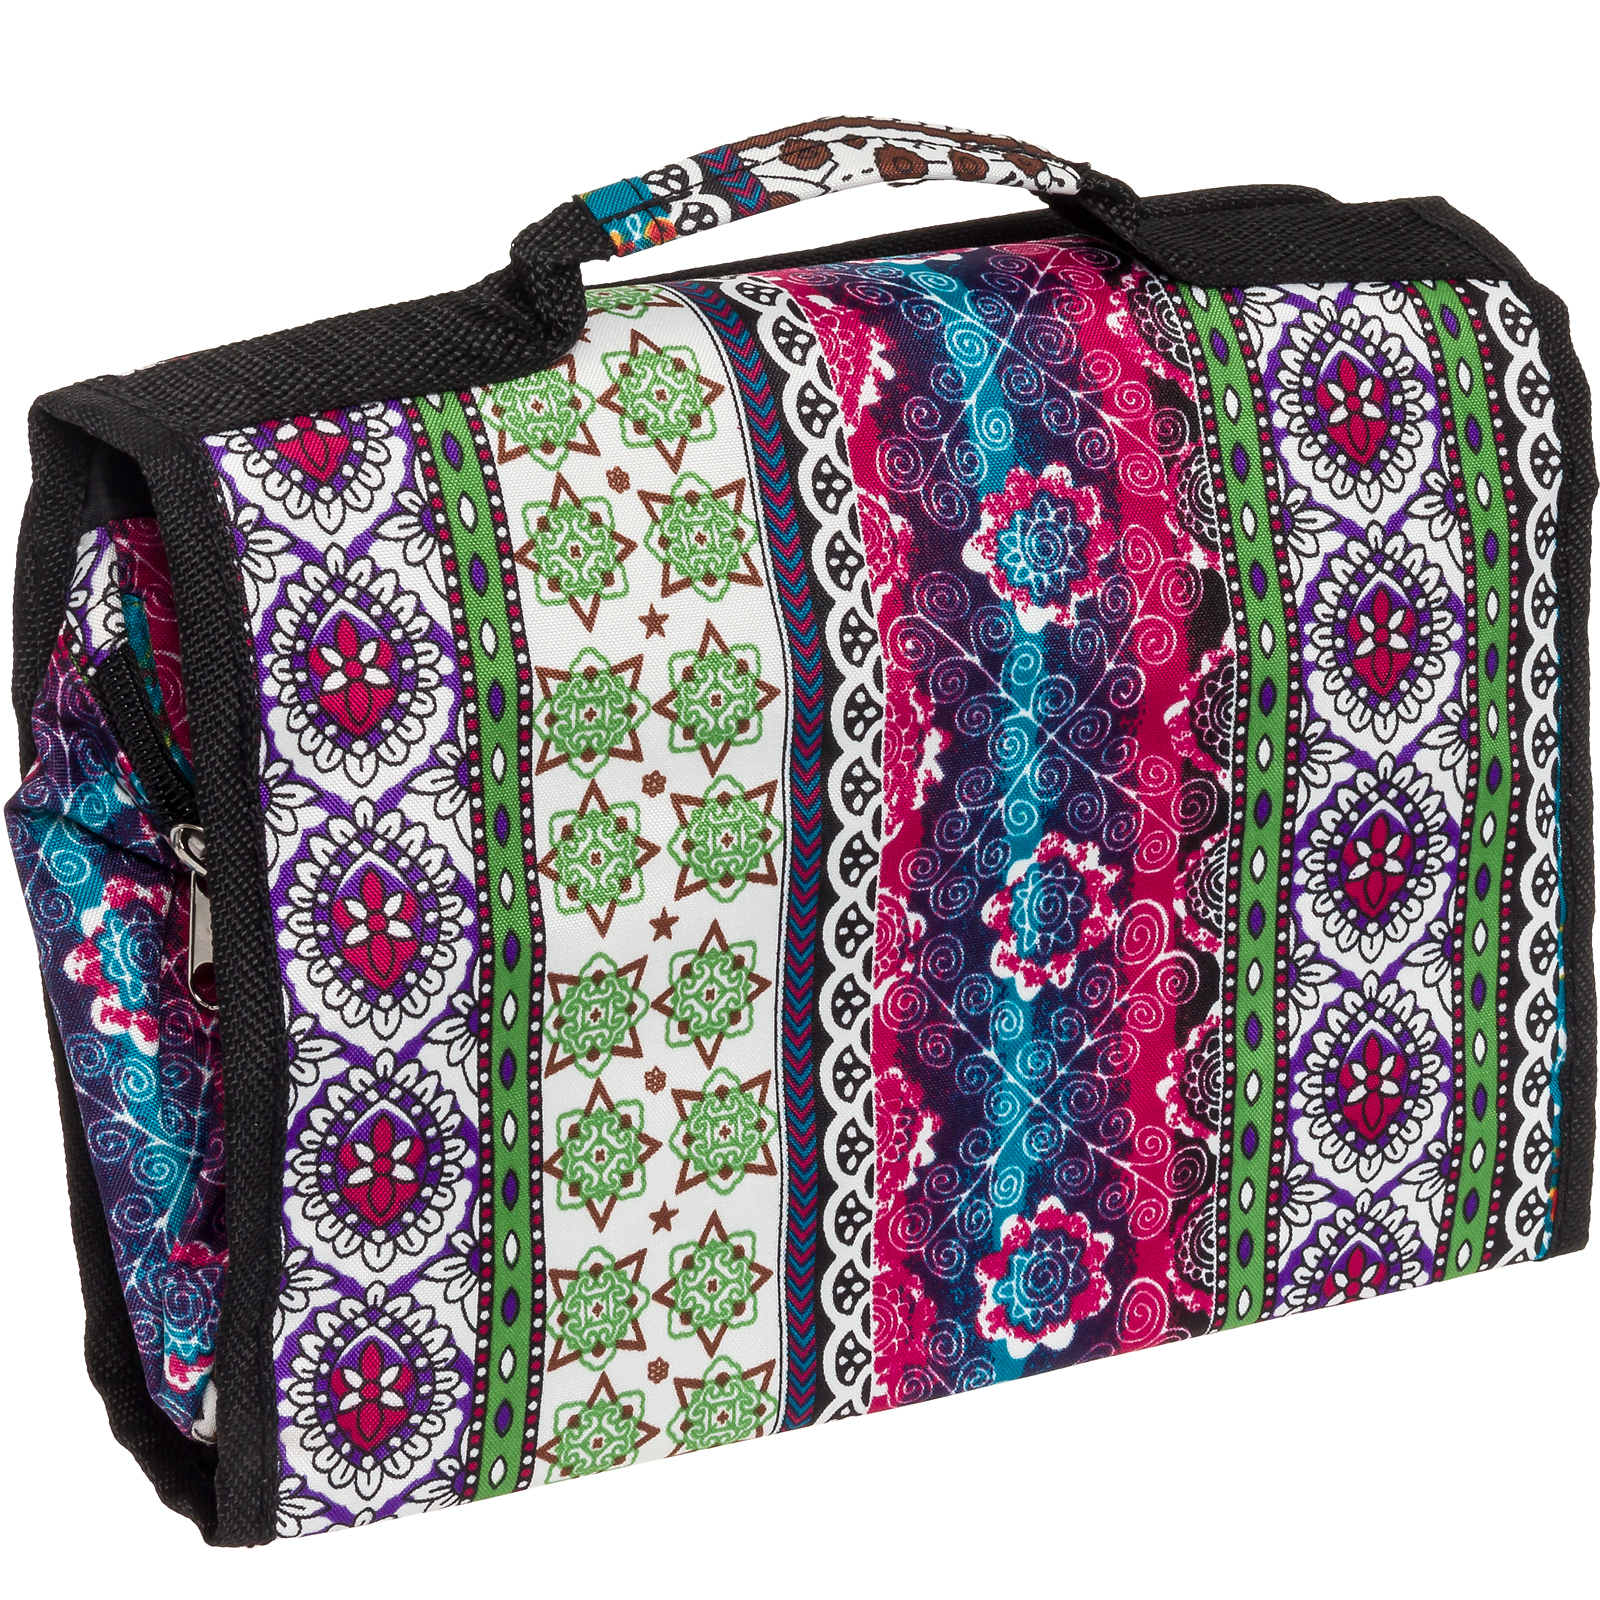 Silverhooks Boho Print Travel Cosmetic Case Accessory Organizer Bag w Black Trim